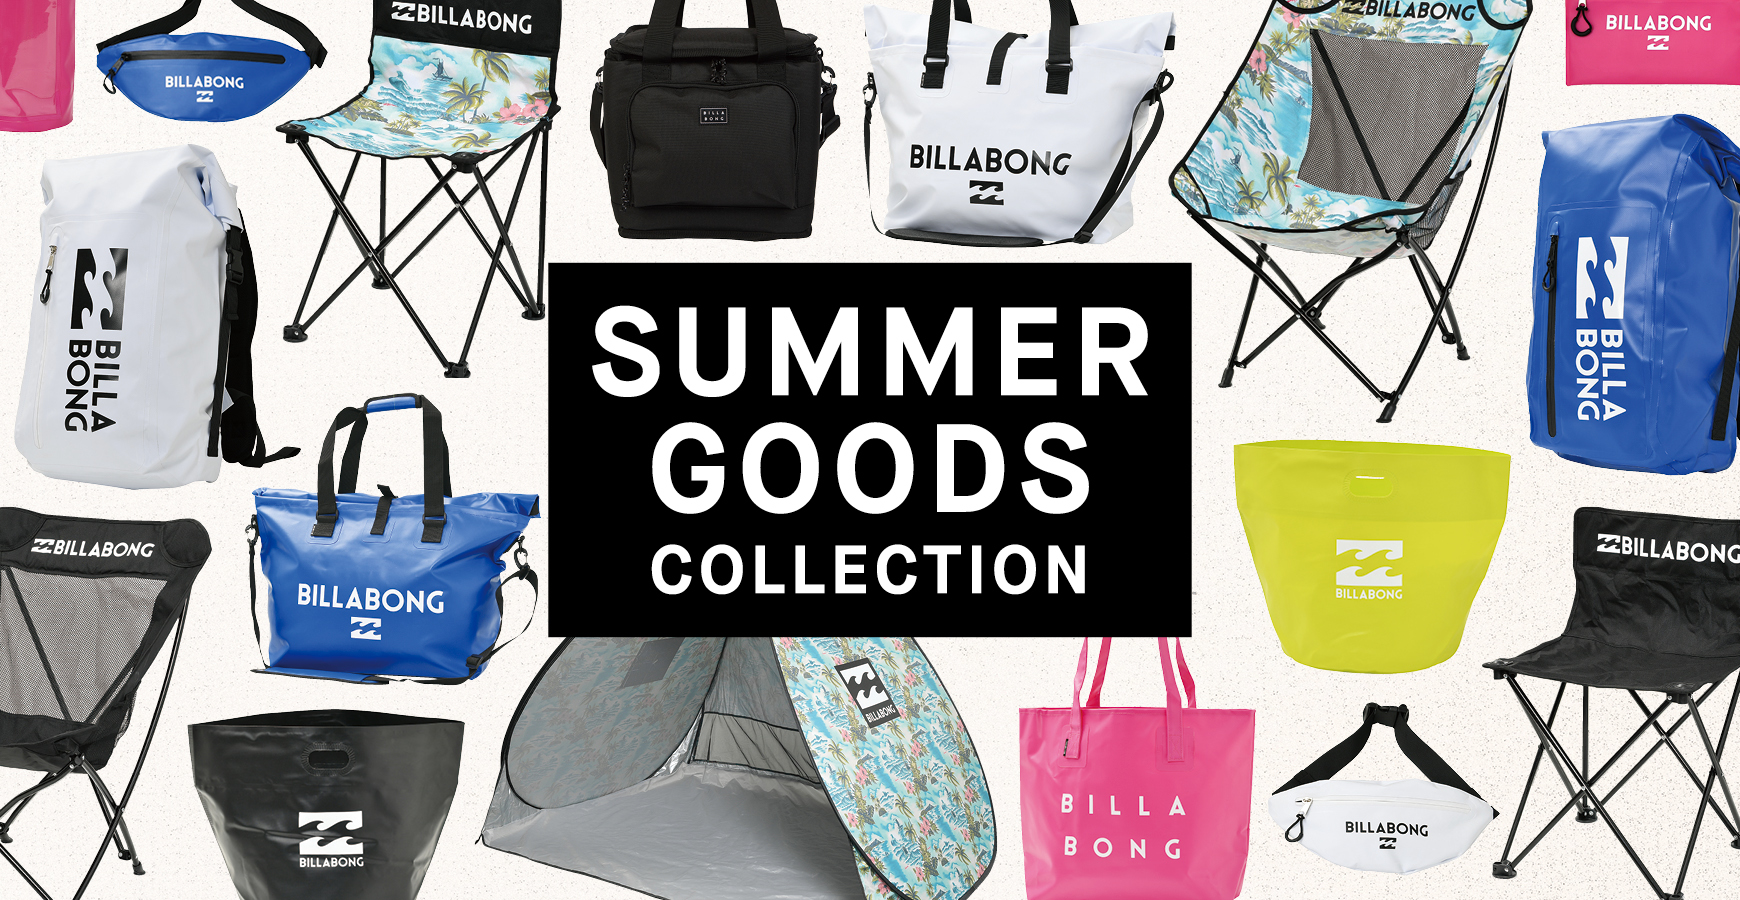 SUMMER GOOD COLLECTION